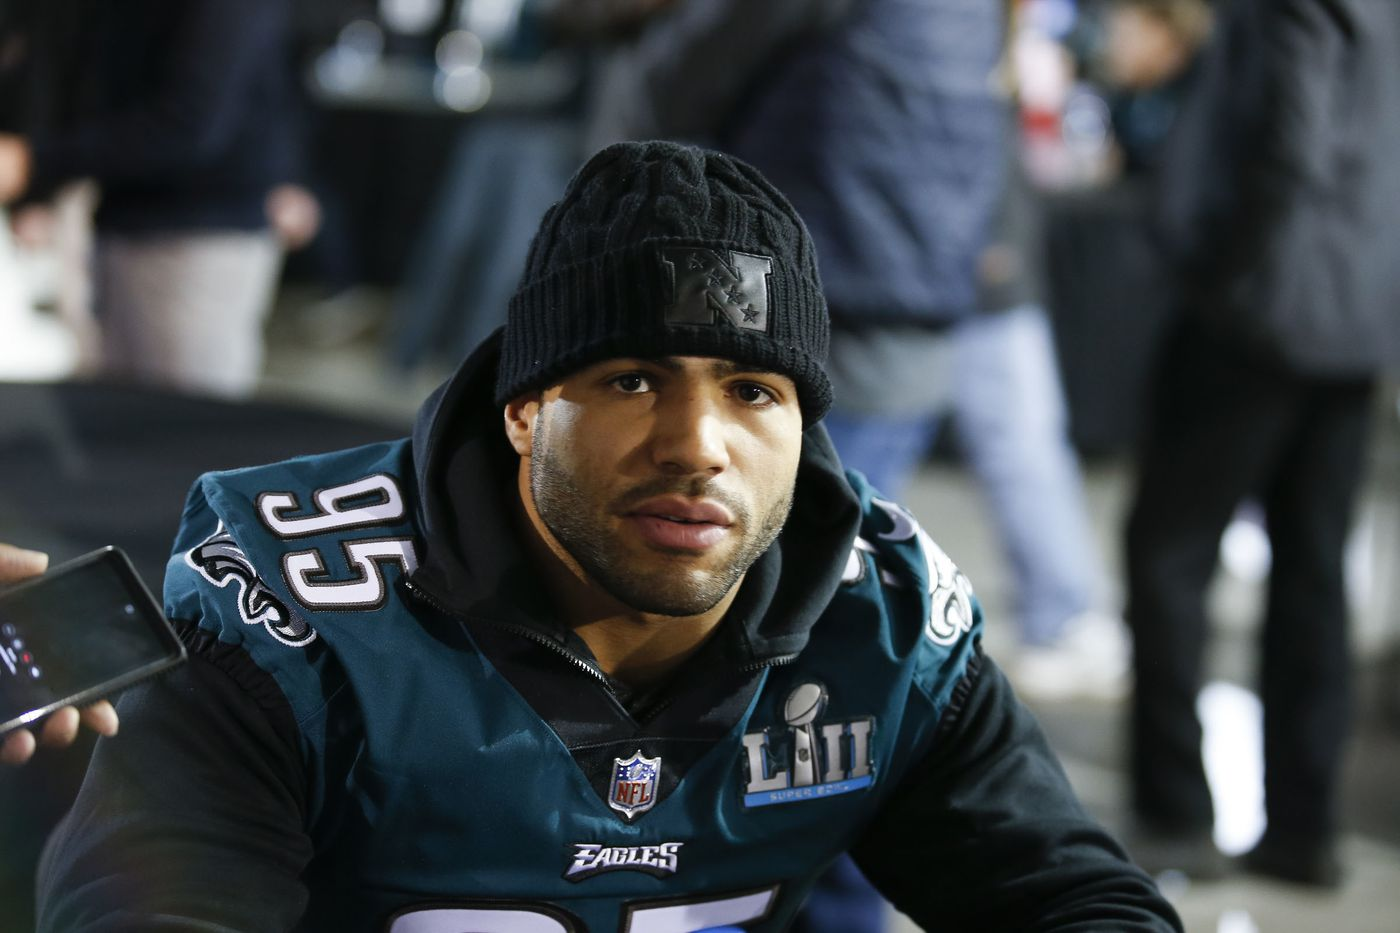 Ex-Eagle Mychal Kendricks pleads guilty to insider trading, faces prison time